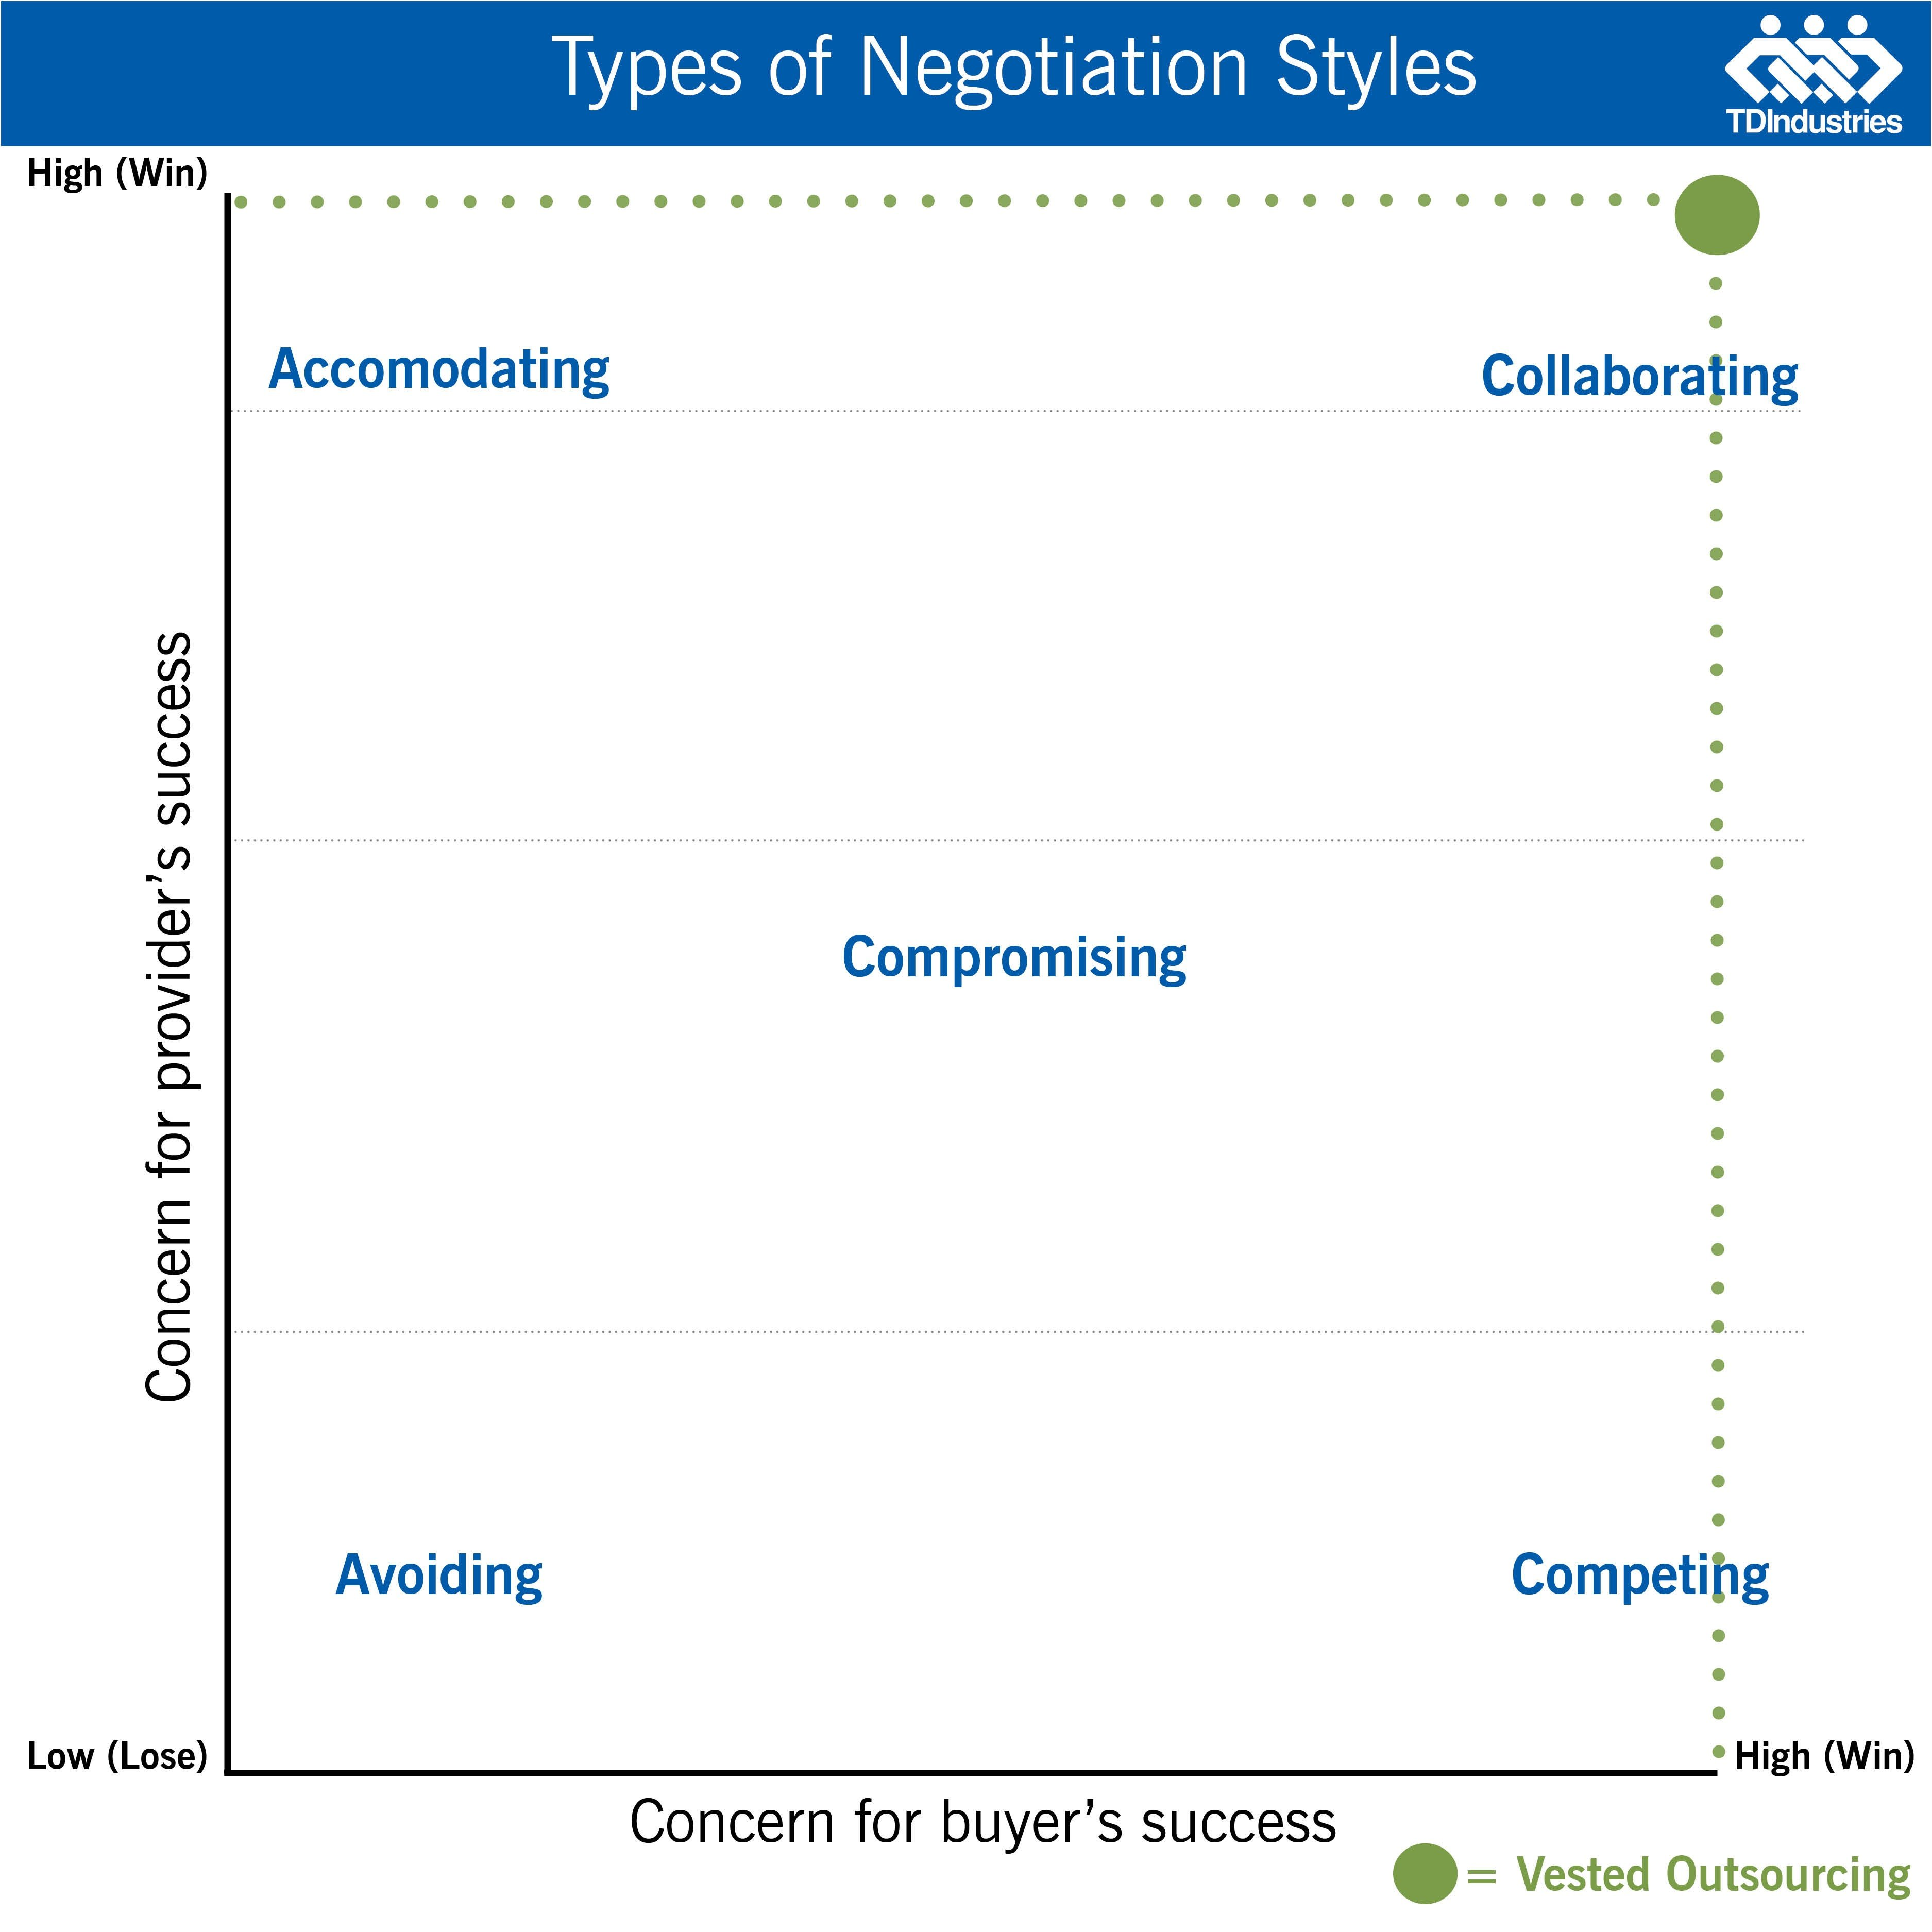 Vested Outsourcing and Negotiation Styles